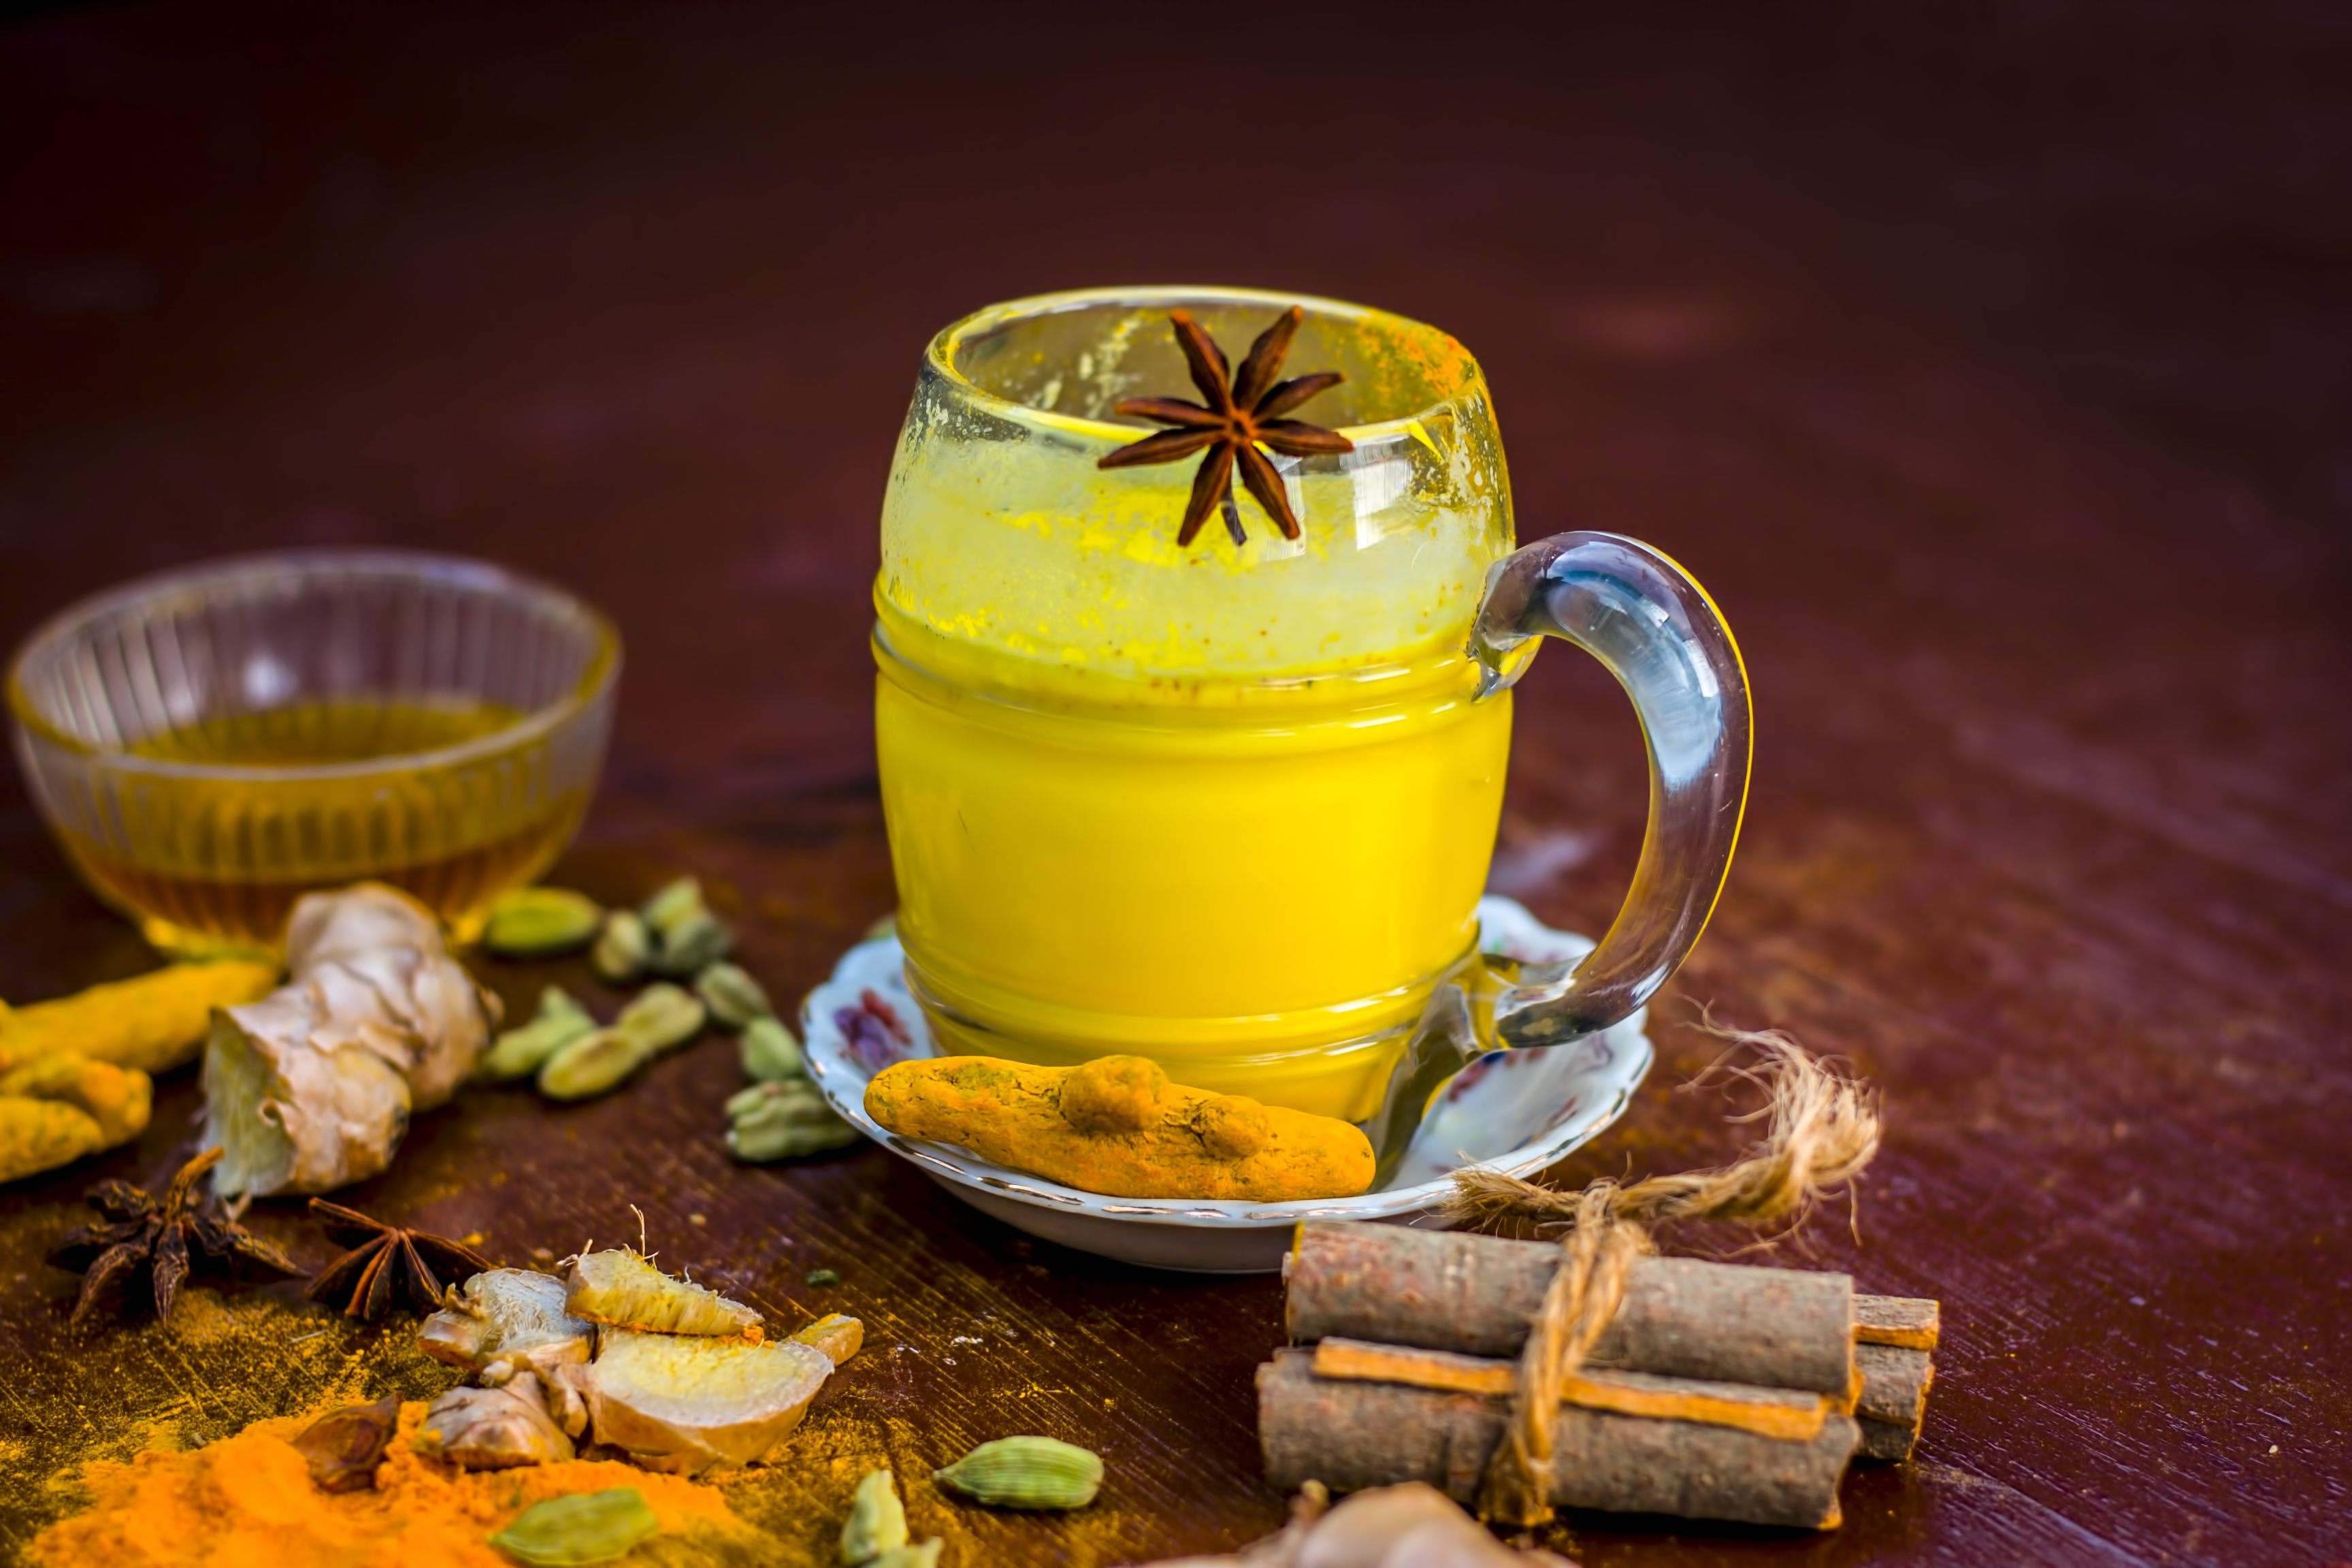 Golden milk with species like green cardamom,turmeric,cinnamon,honey and ginger on wooden surface.